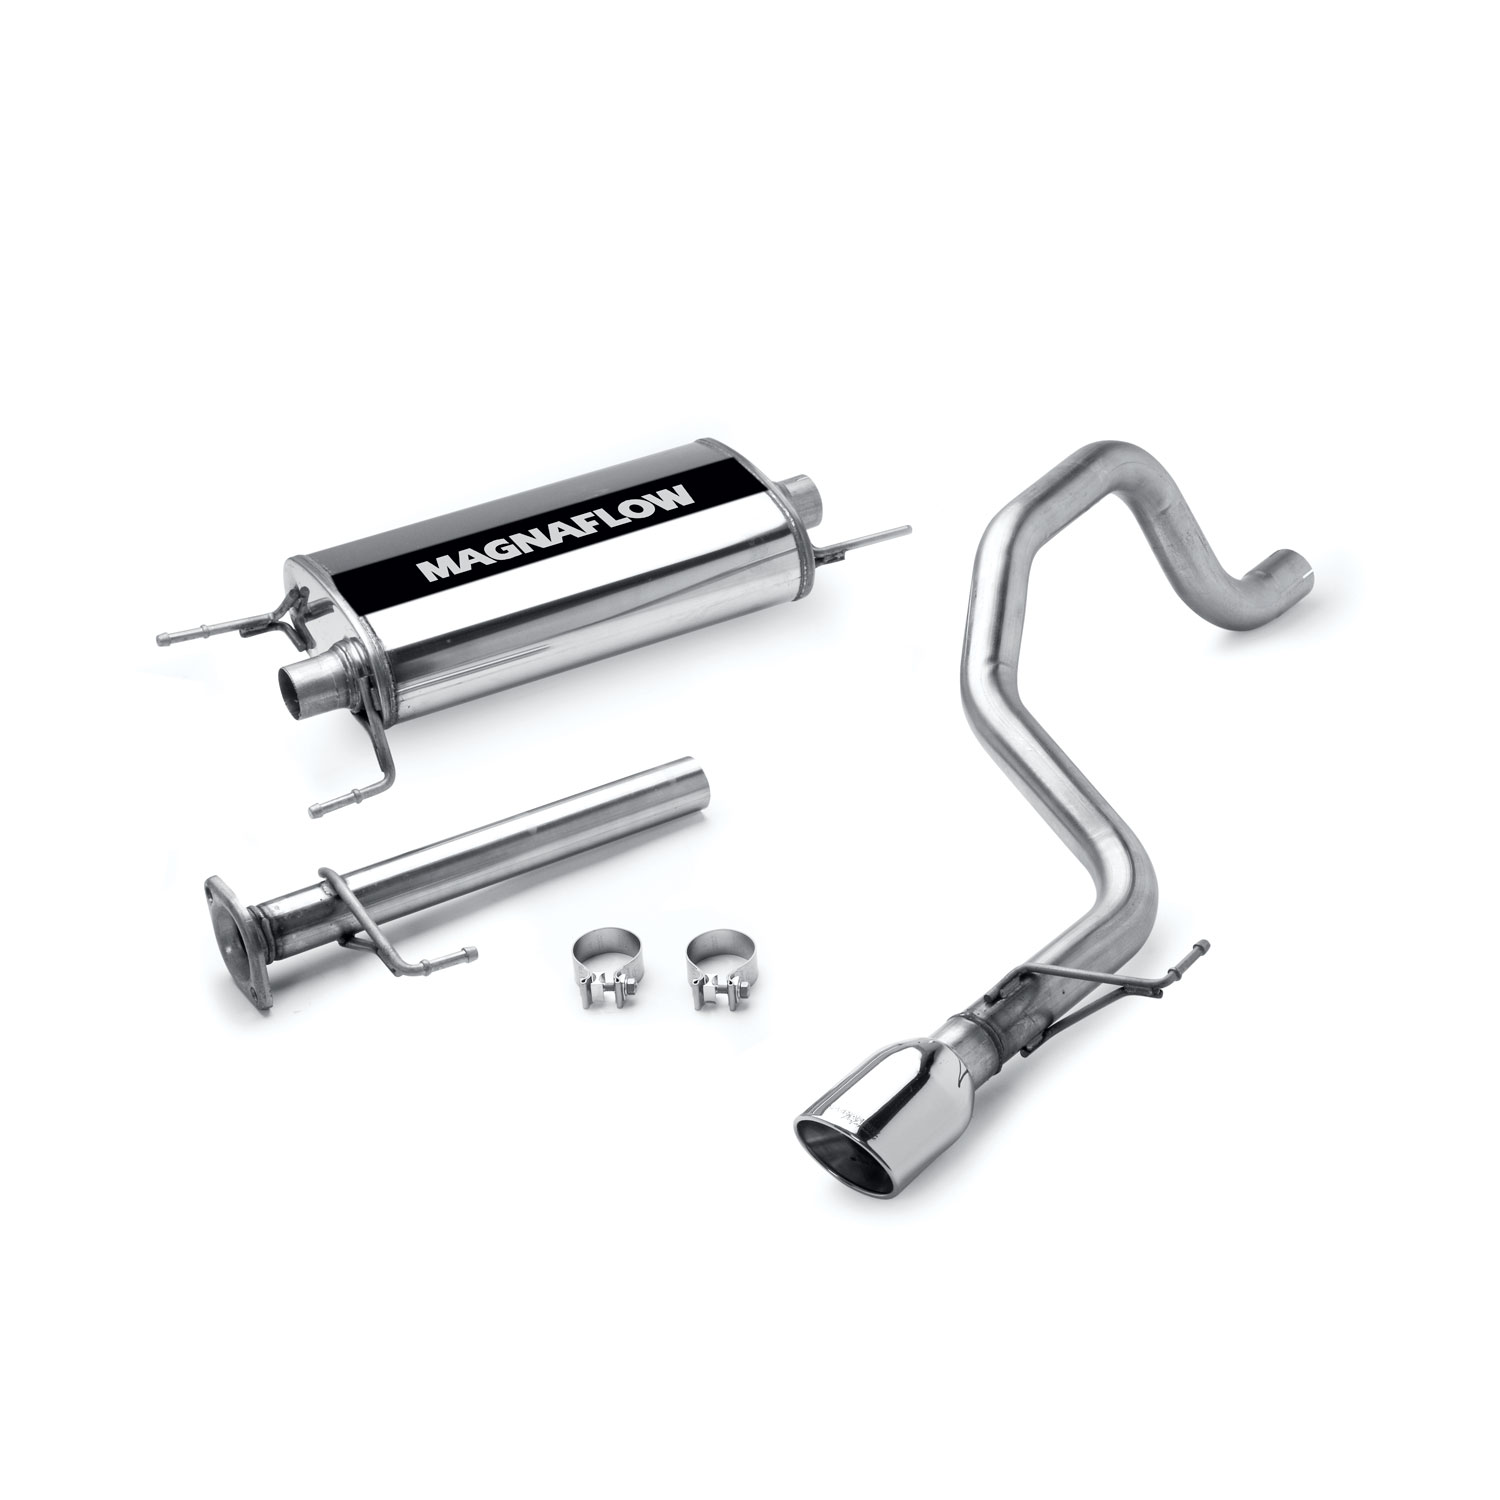 Magnaflow 16649 Stainless Steel Cat-Back Performance